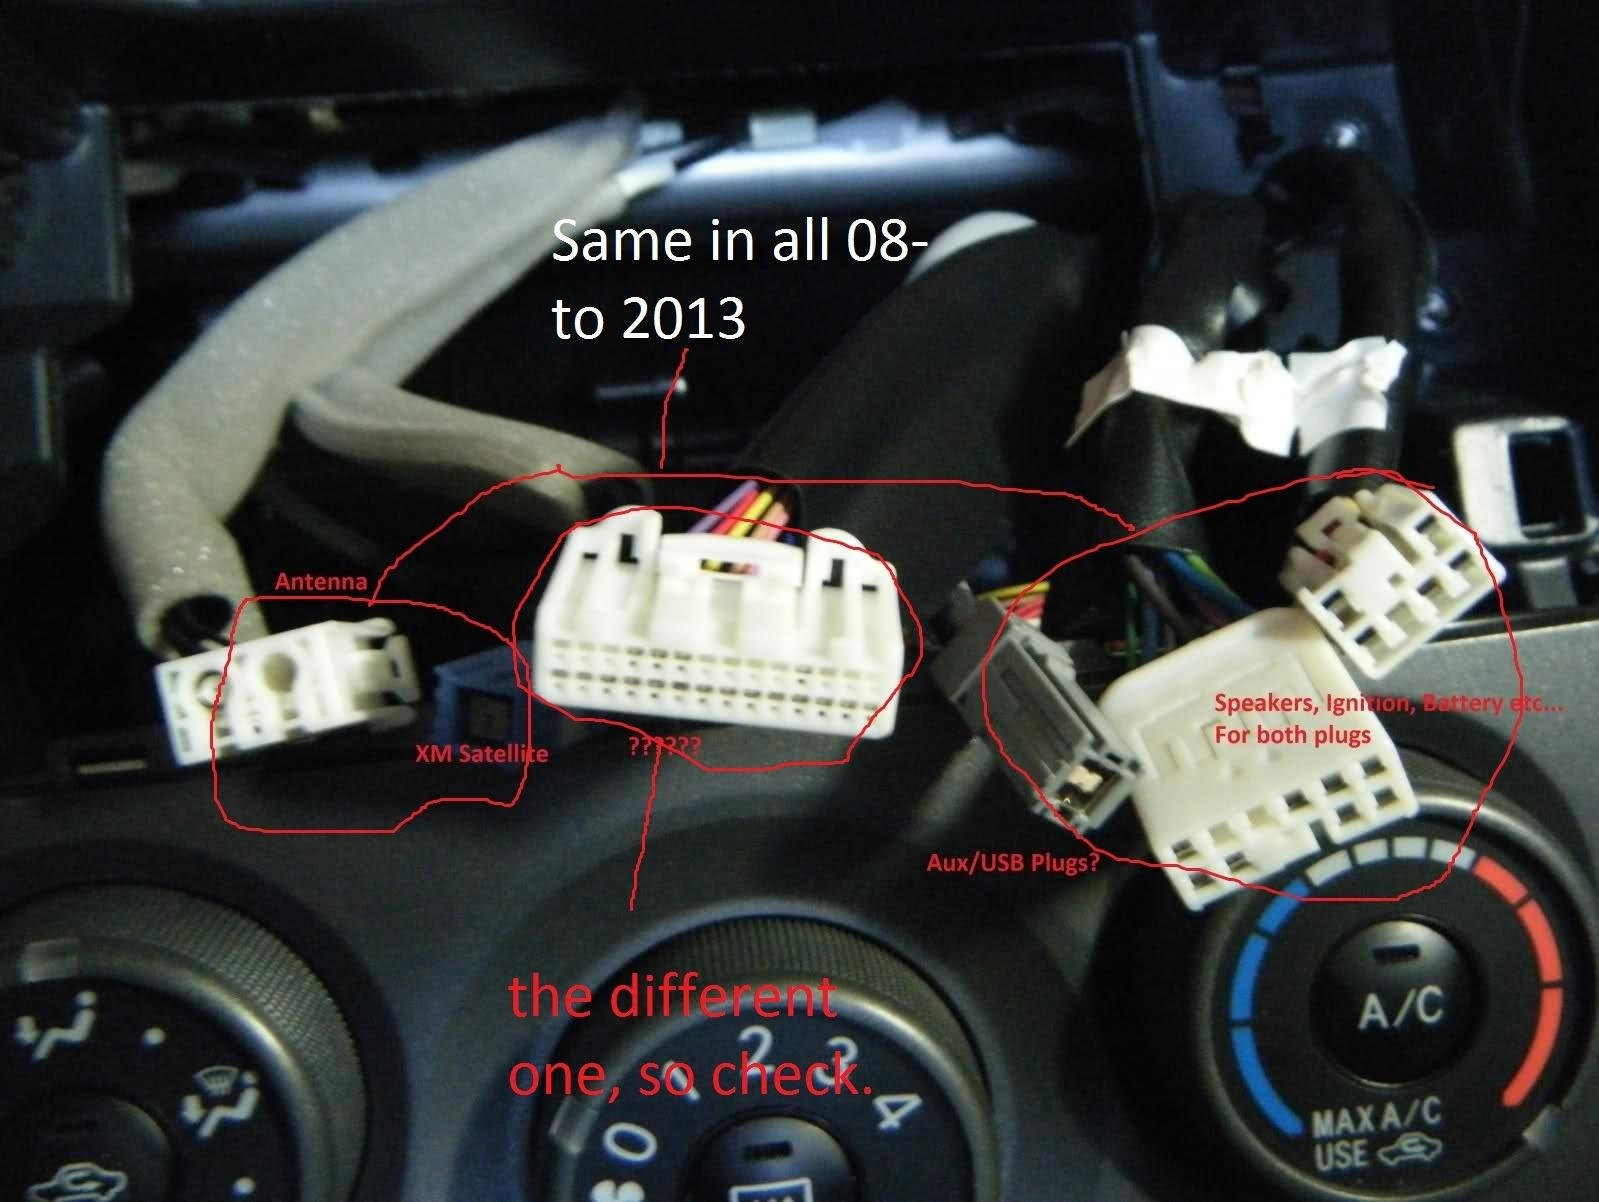 medium resolution of toyota entune wiring diagram toyota shock absorber 2013 toyota tundra speaker wiring diagram 2013 tundra audio wiring diagram